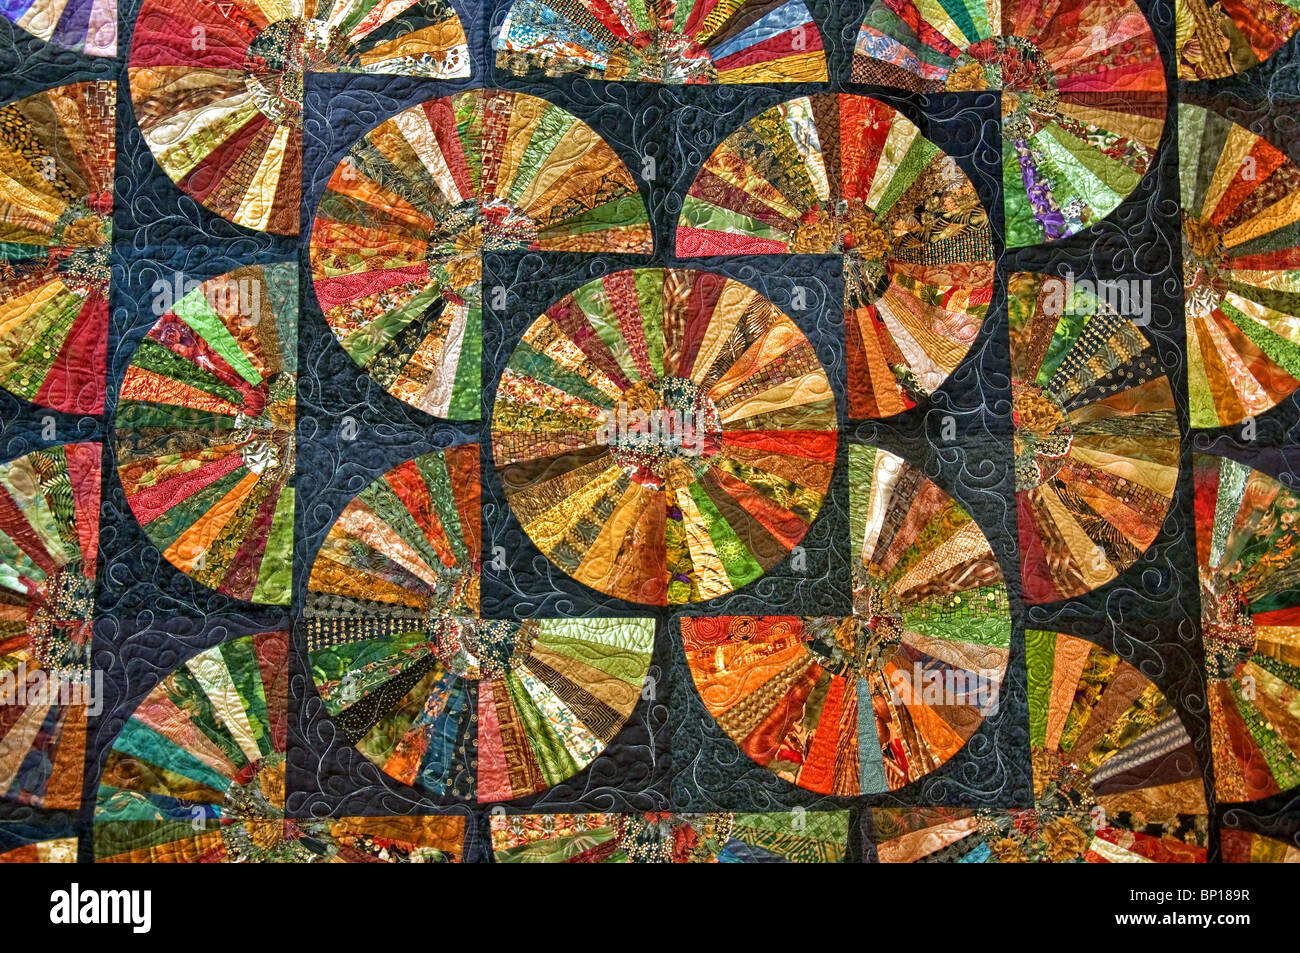 Black colorful quilt in many round shapes for a unique abstract pattern and texture design. Beautiful fabric artwork. - Stock Image